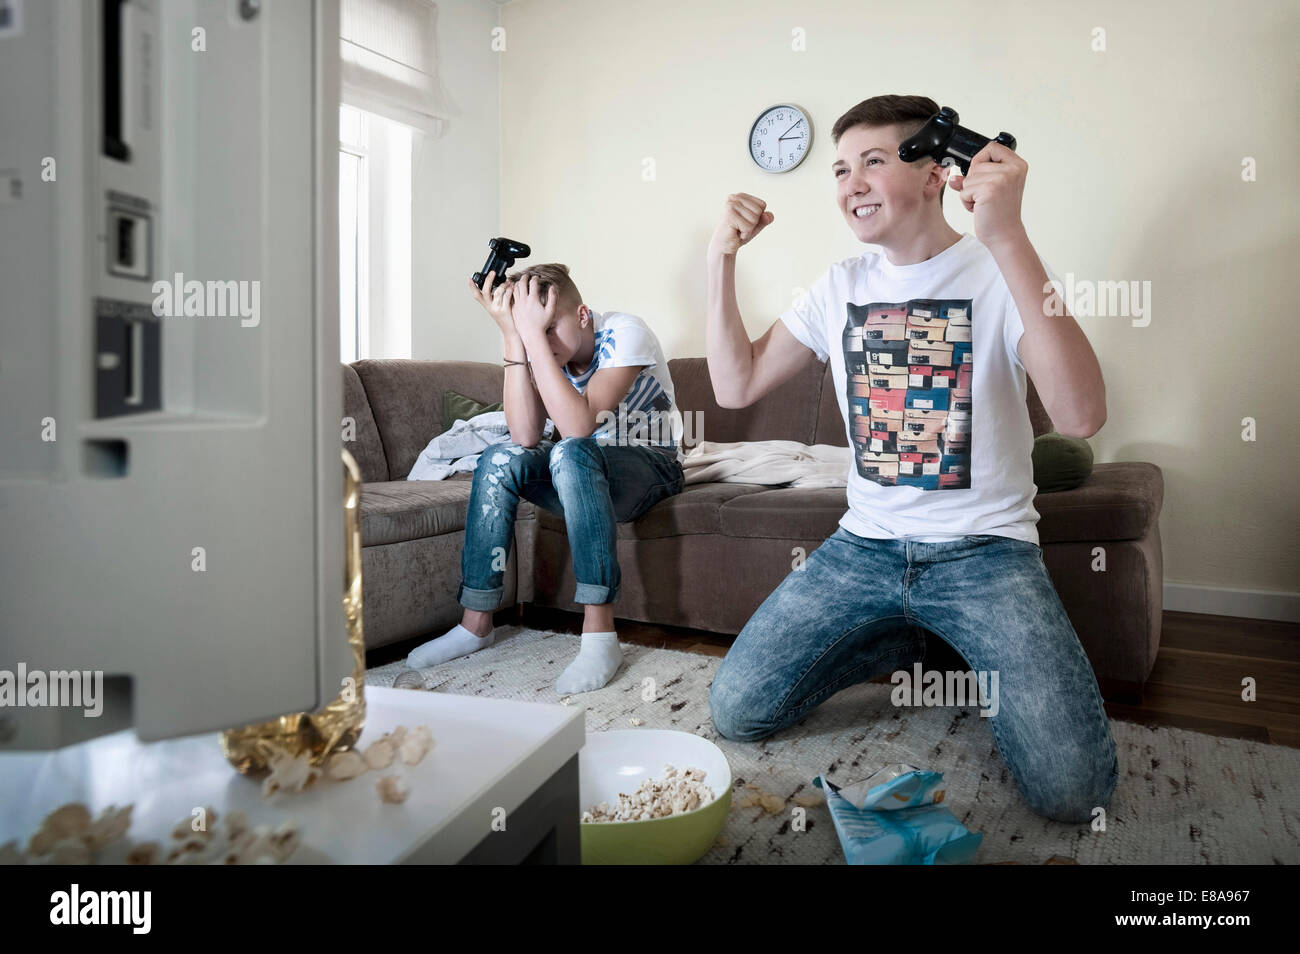 Deux adolescents playing video game Photo Stock